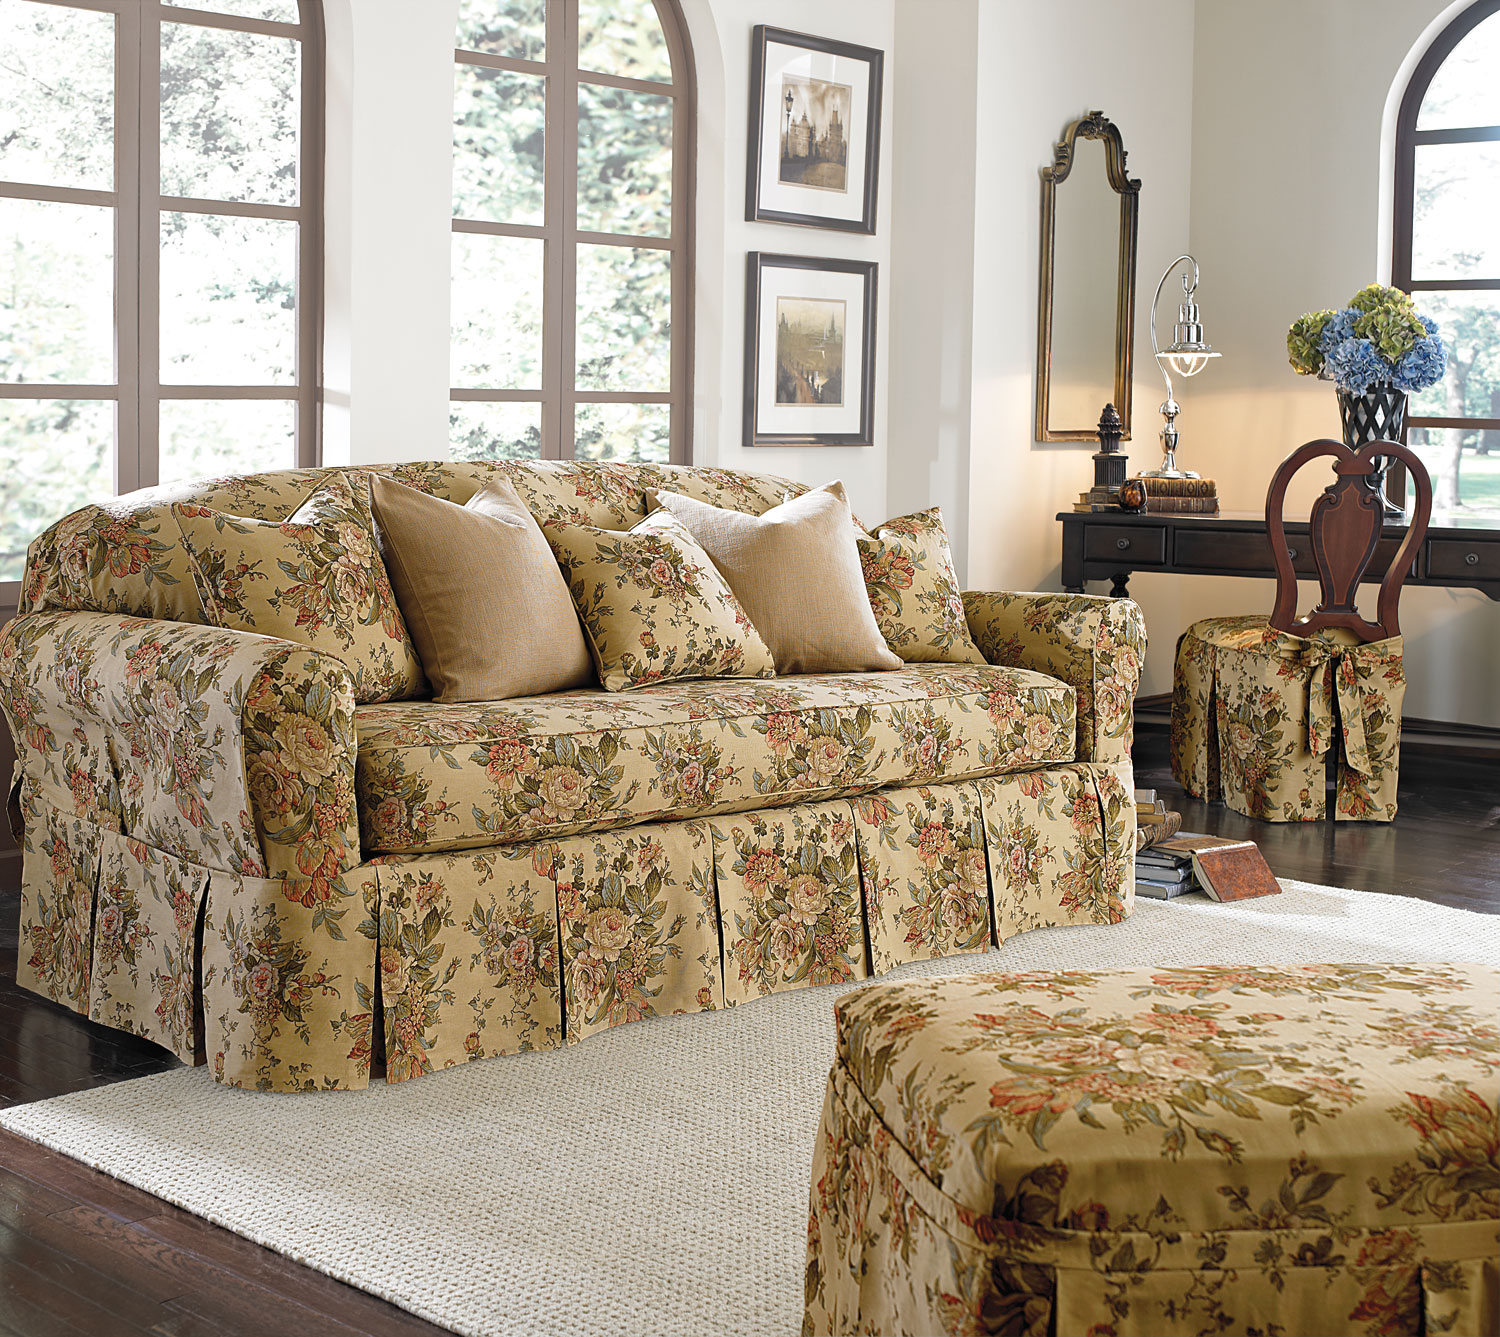 Sure Fit Slipcovers: Our New Summer 2013 Sure Fit